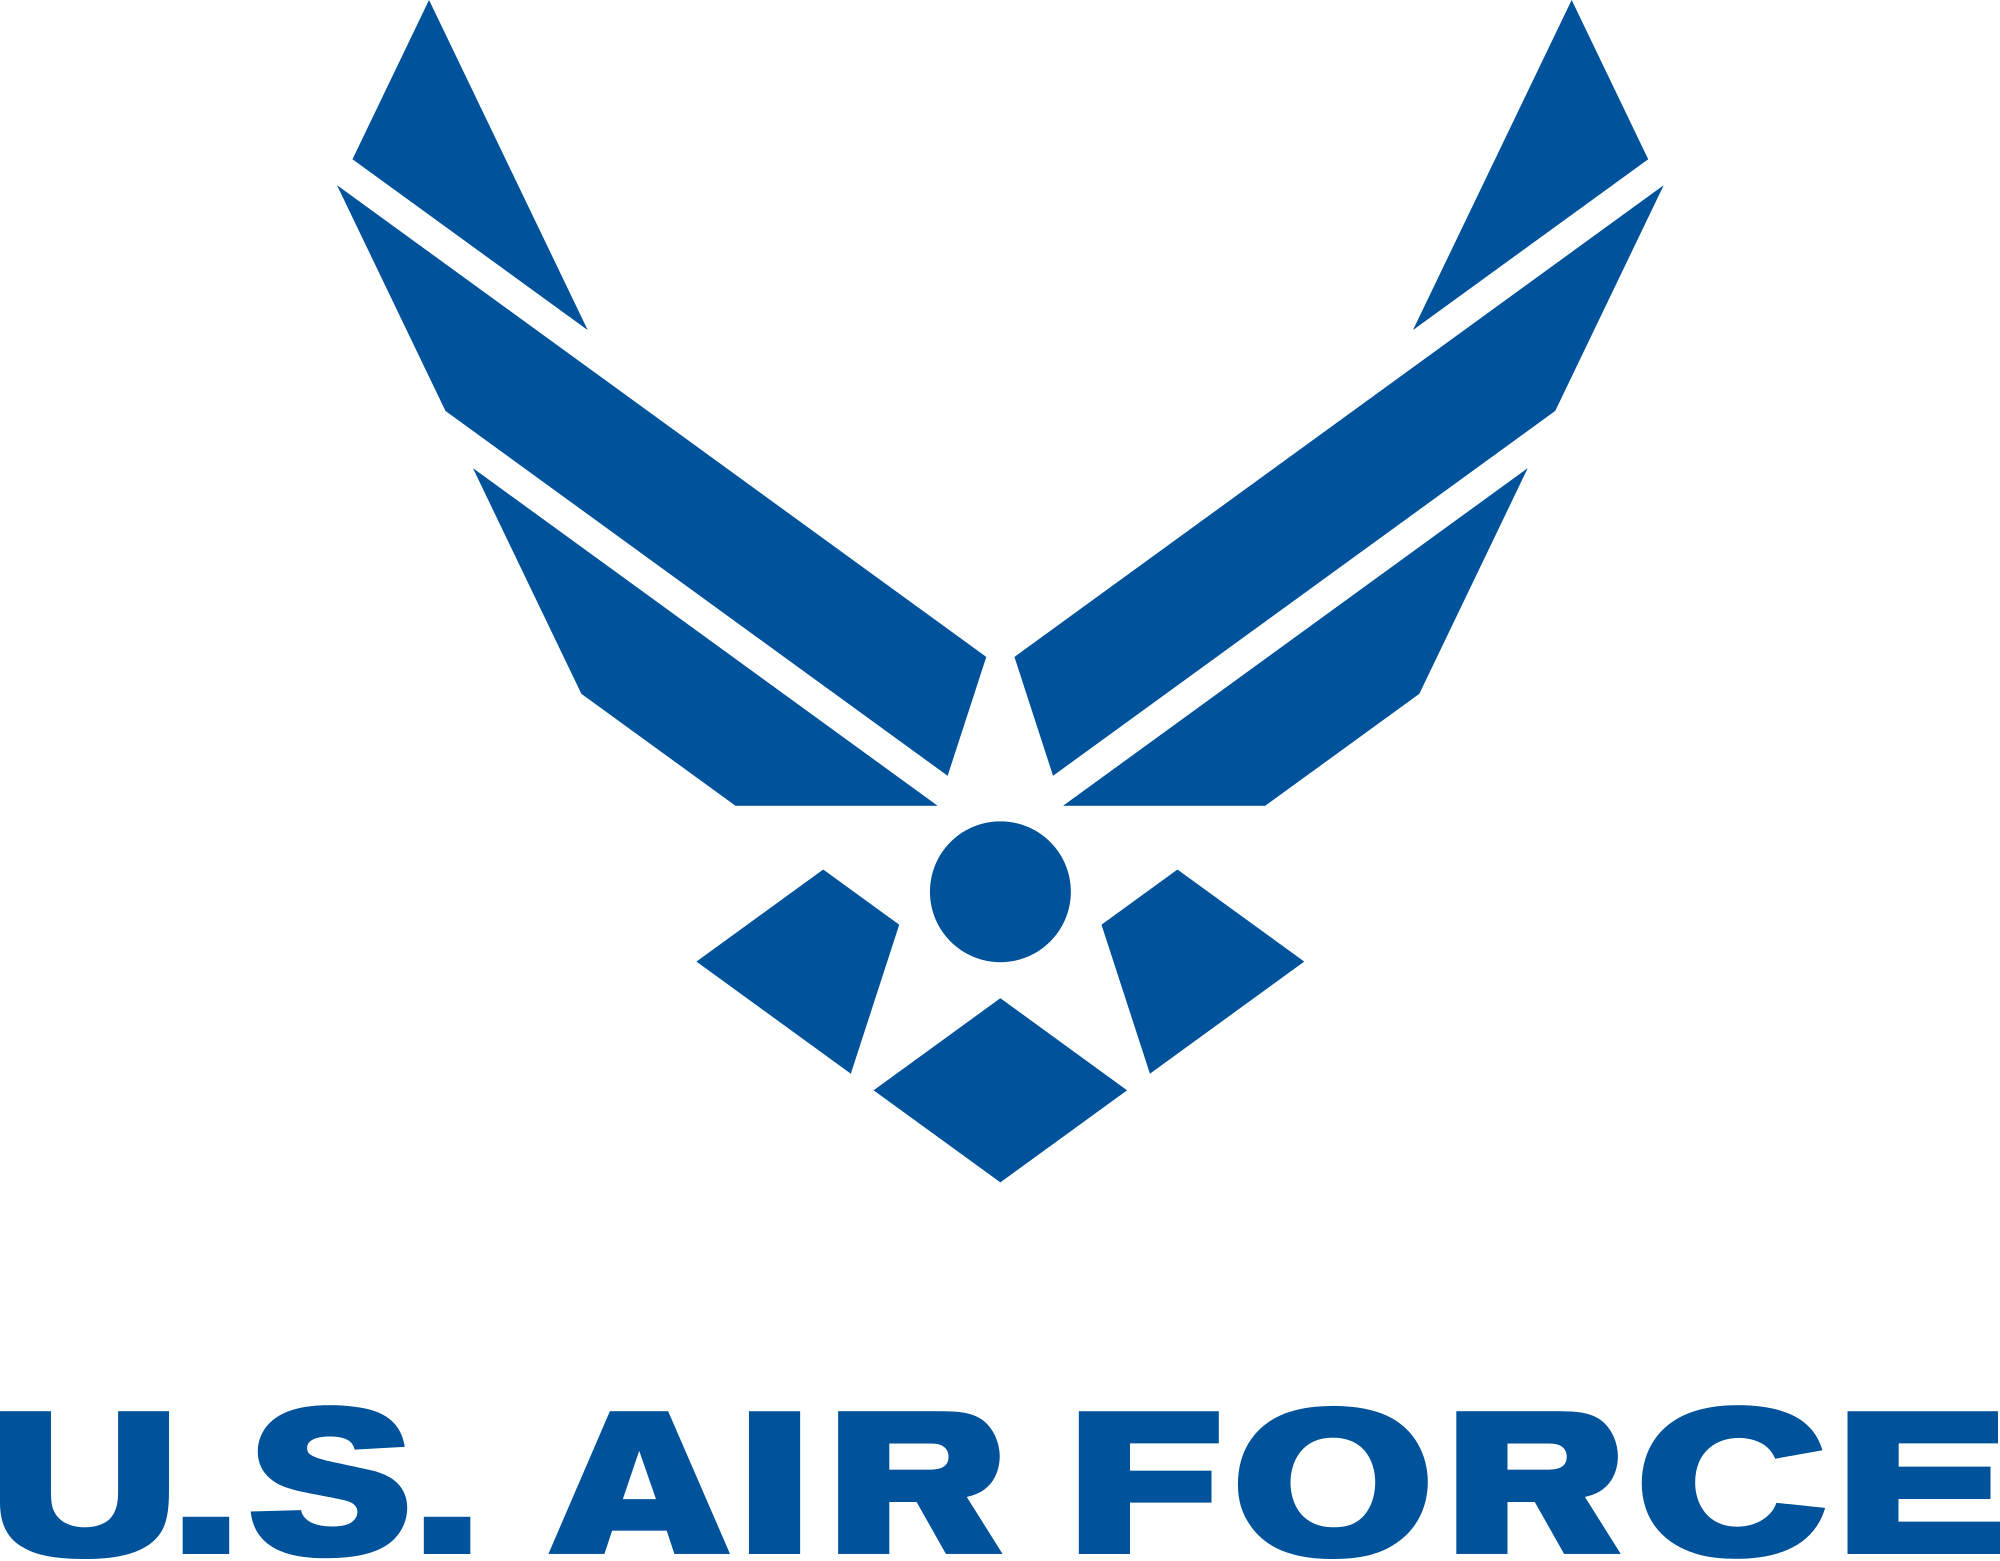 US_Air_Force.png